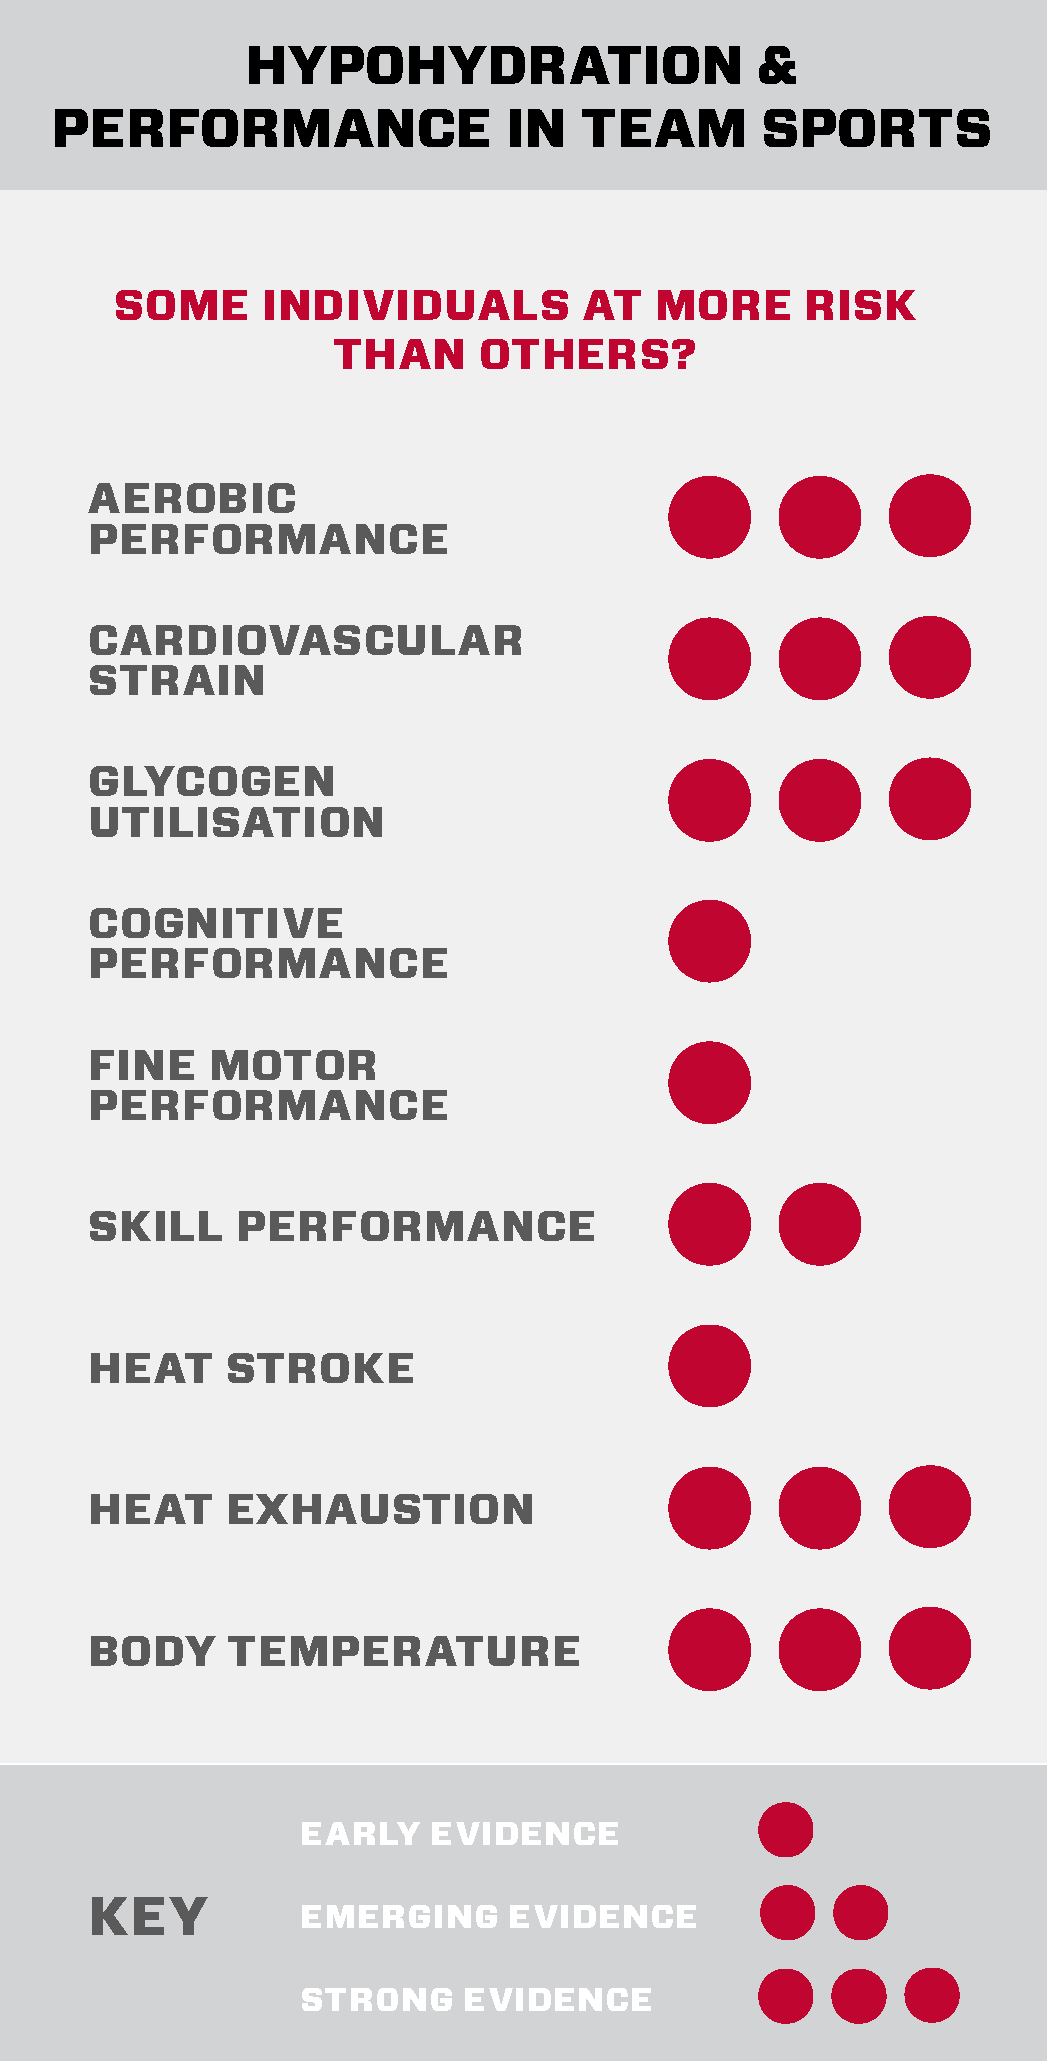 Figure 3:  Dehydration (hypohydration, if you are dehydrated by more than 3% of your body weight) can affect many processes in the body that can affect soccer performance. The stars represent the strength of the evidence.